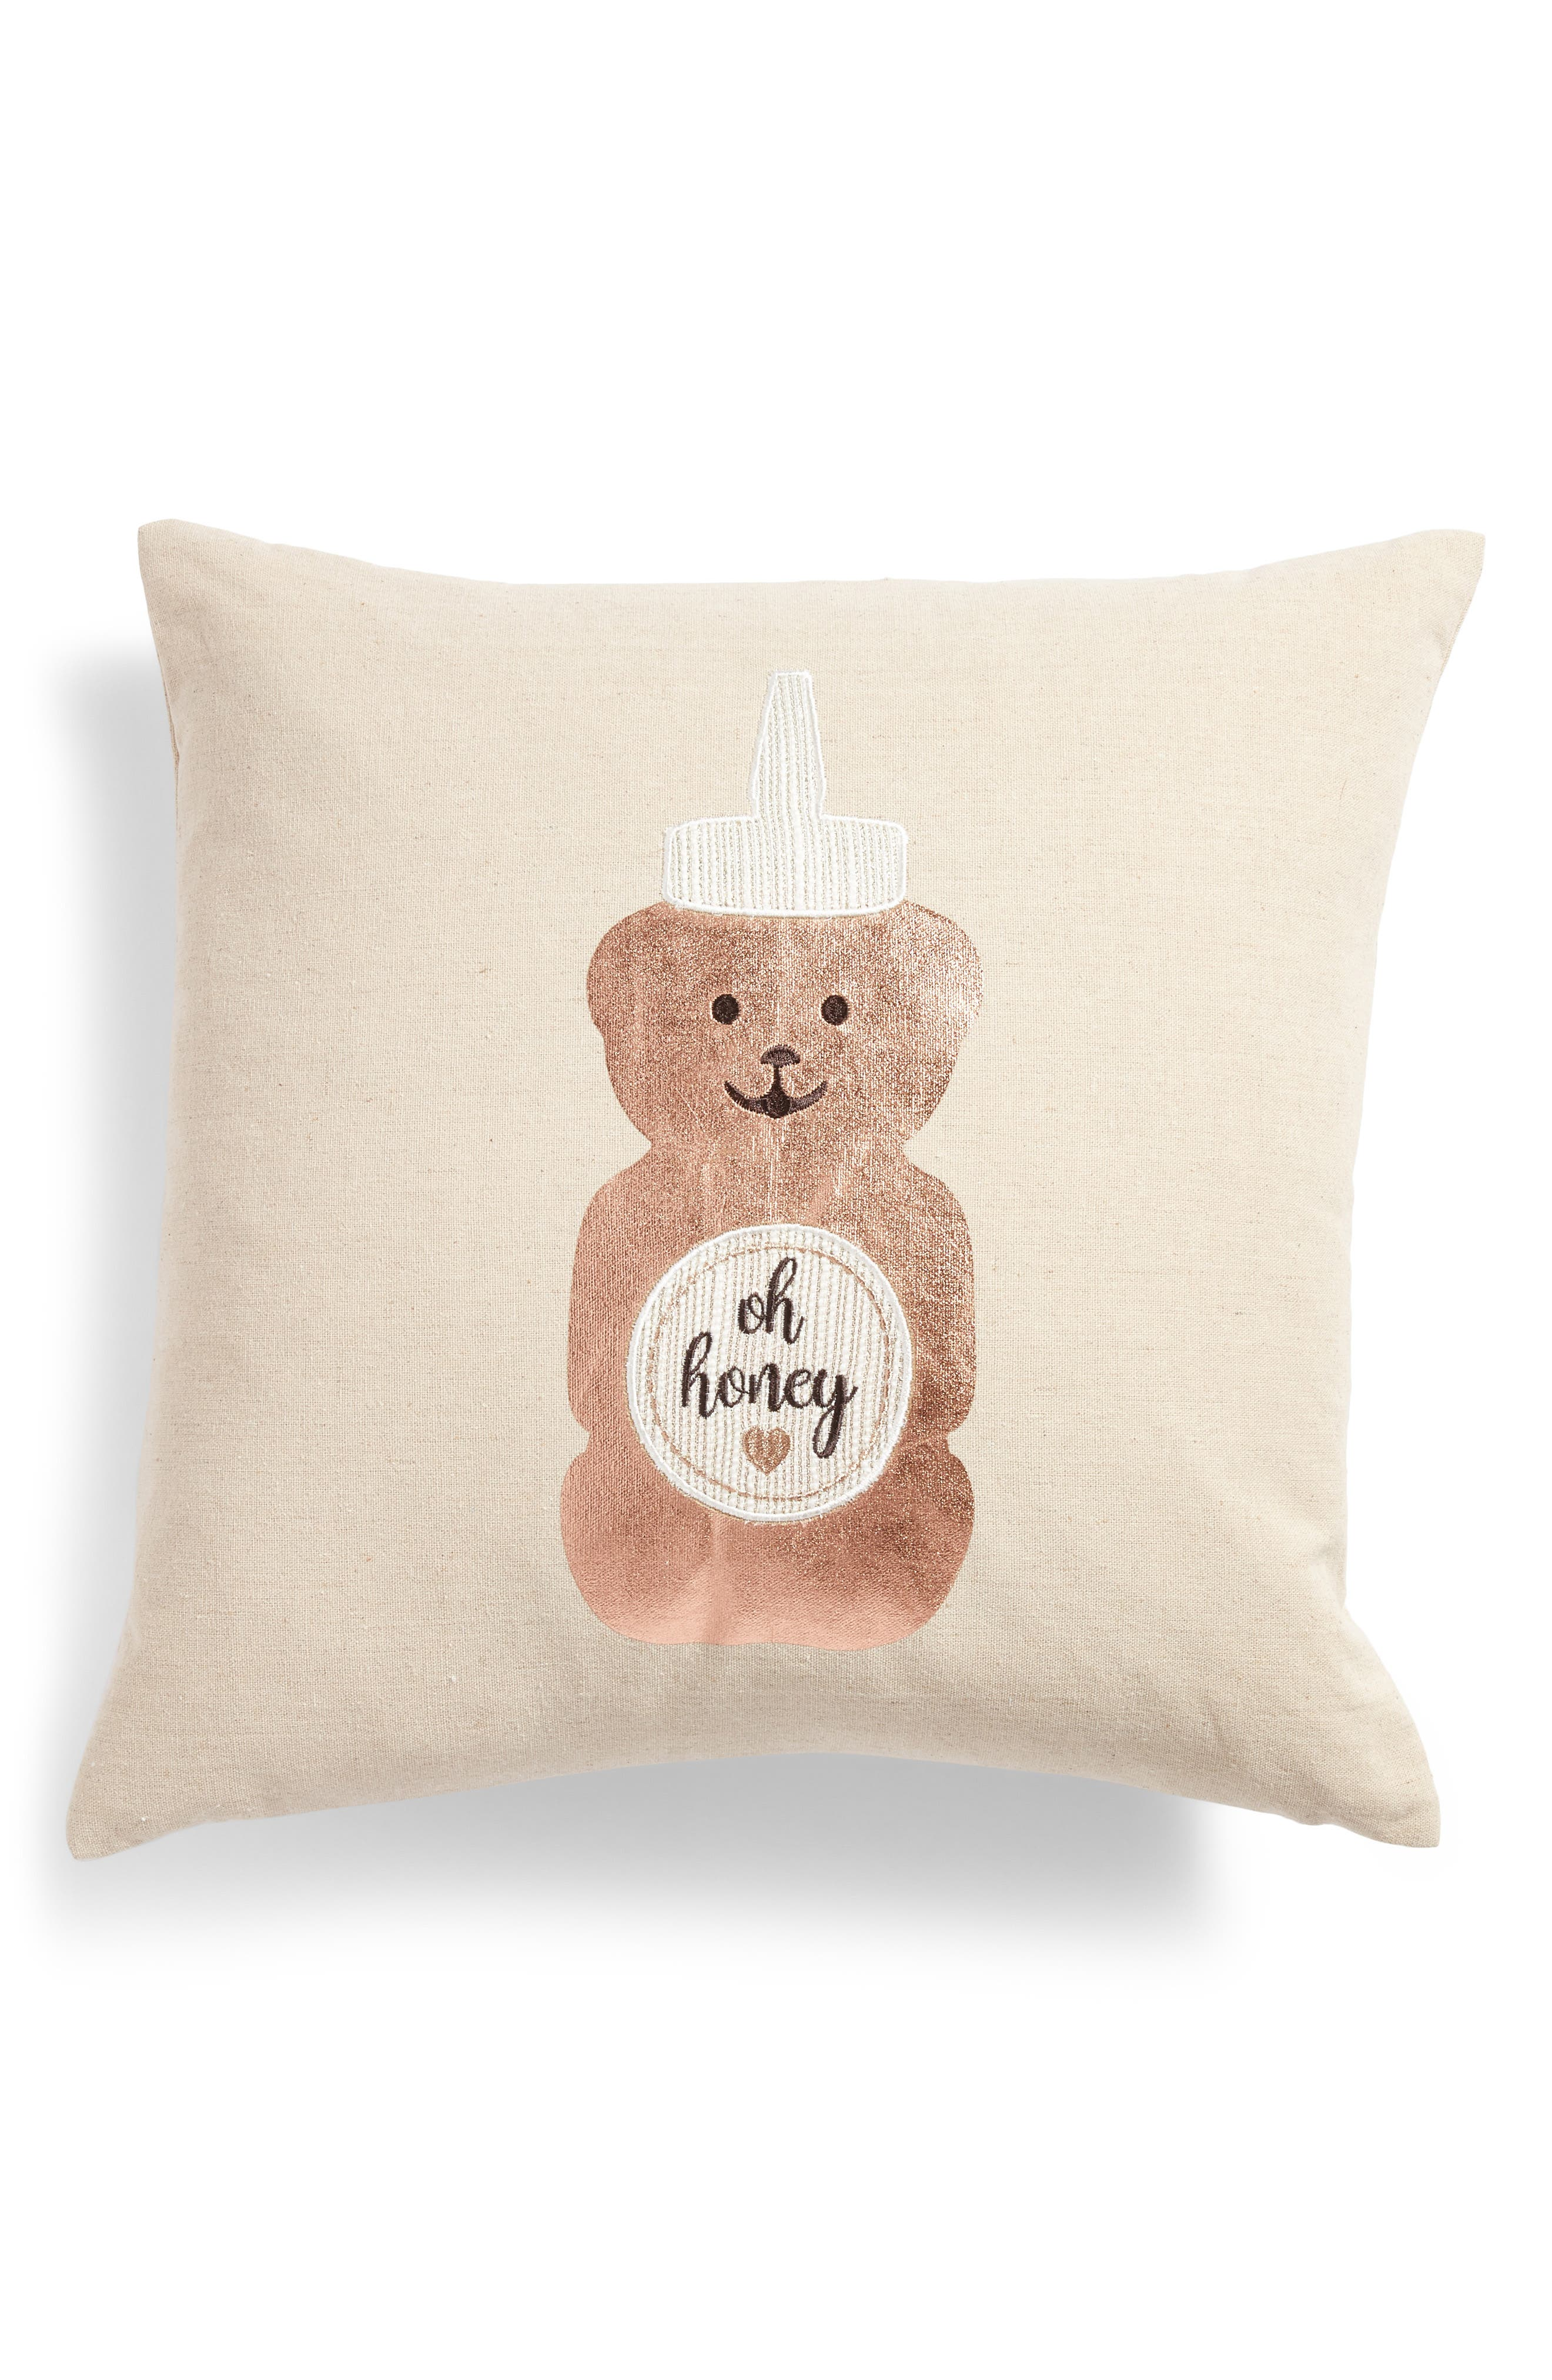 Oh Honey Accent Pillow,                         Main,                         color, Grey